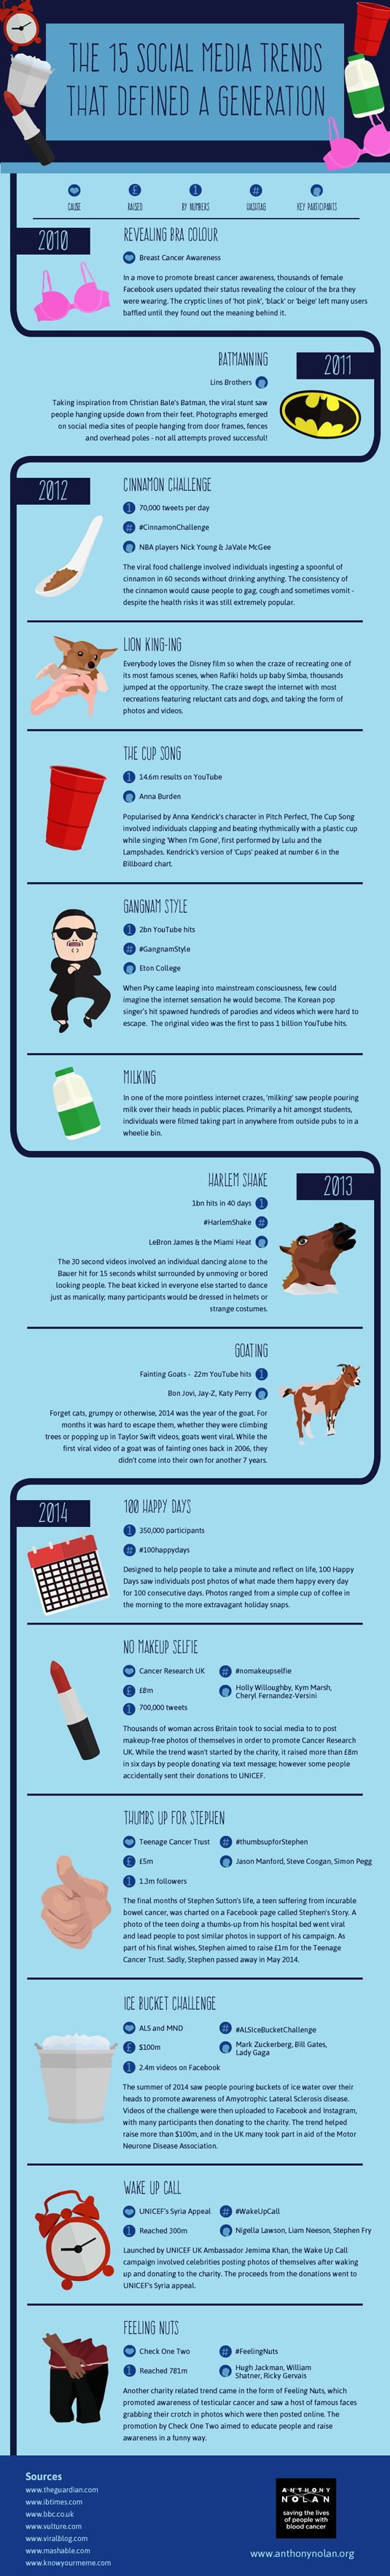 15 social media trends that defined a generation | Infographic | Creative Bloq